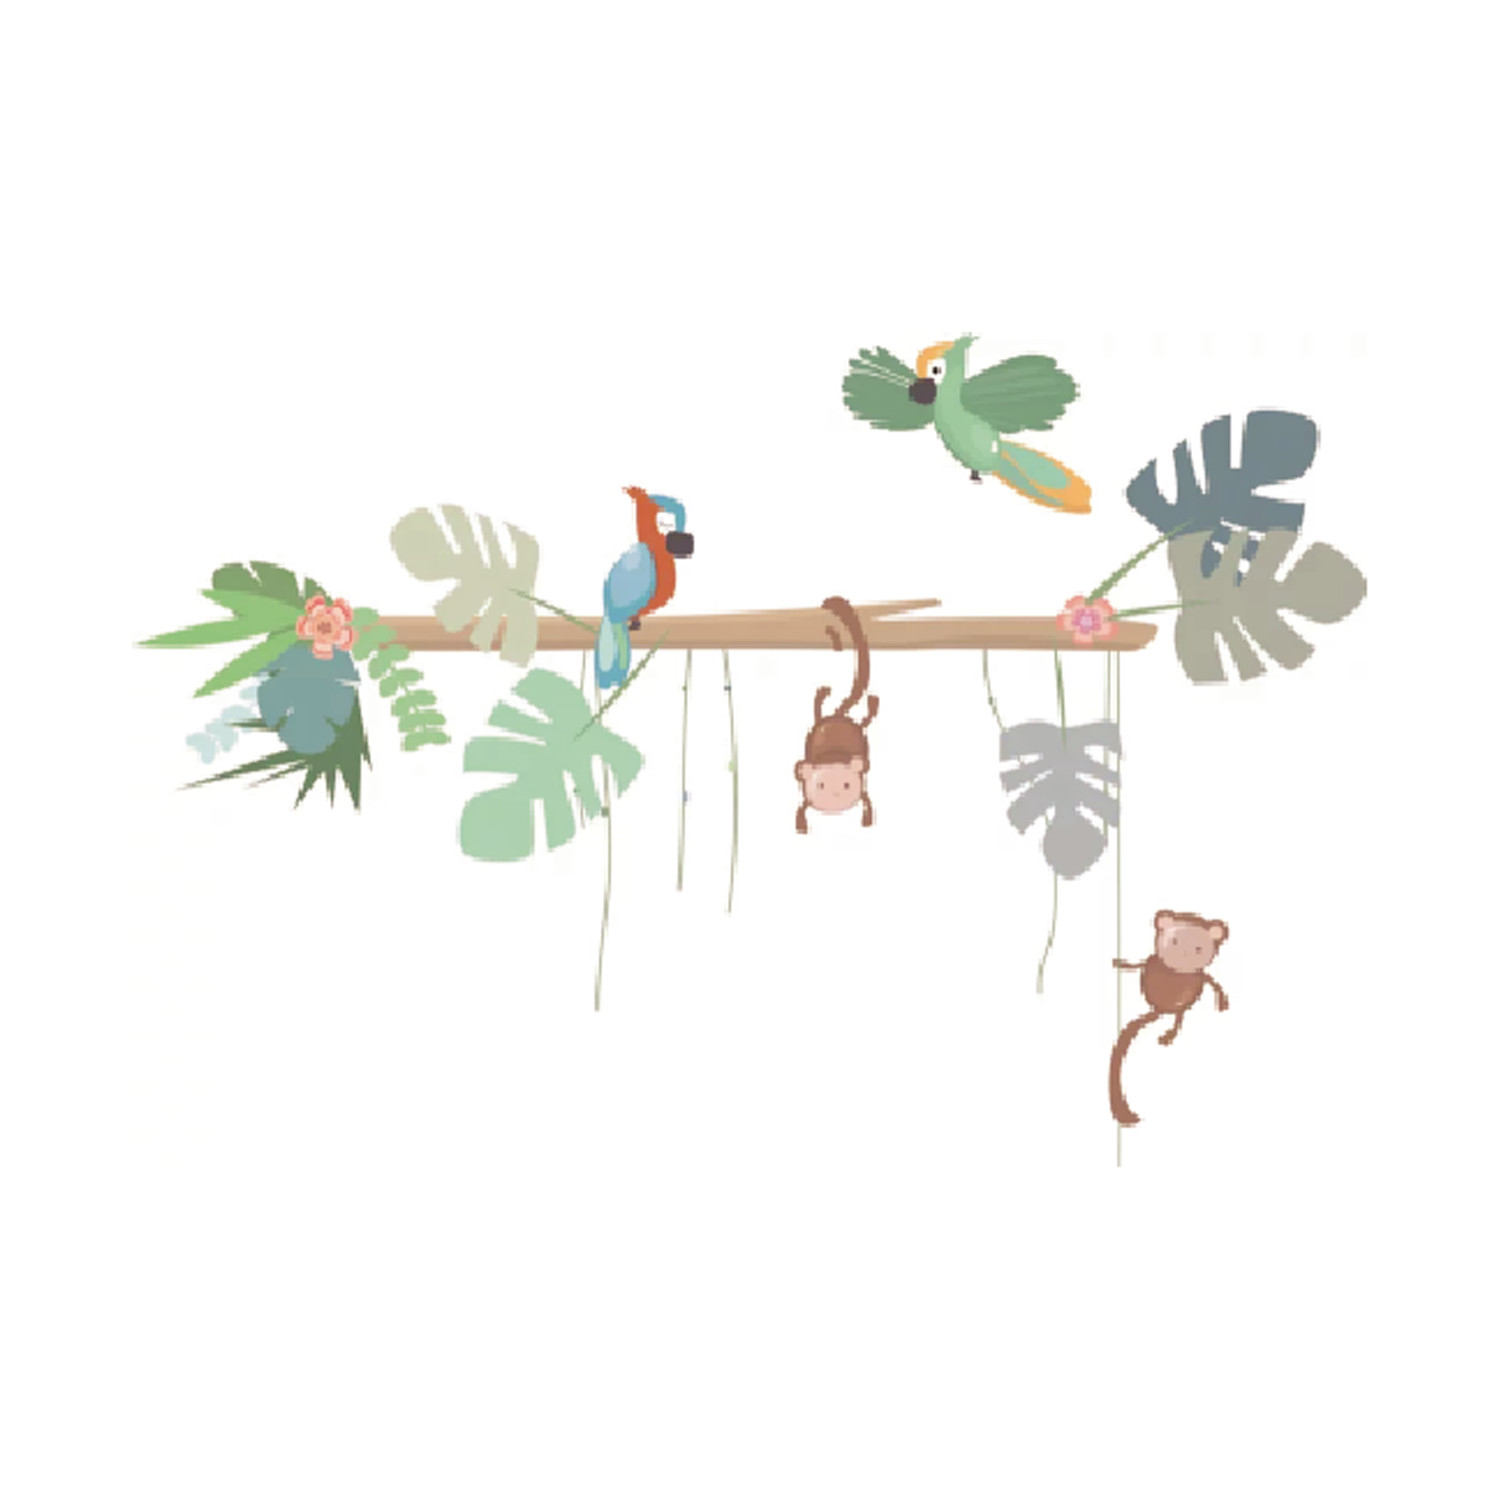 LM Baby Art Jungly Jungle Boomstam Met Papegaai En Aap Muursticker